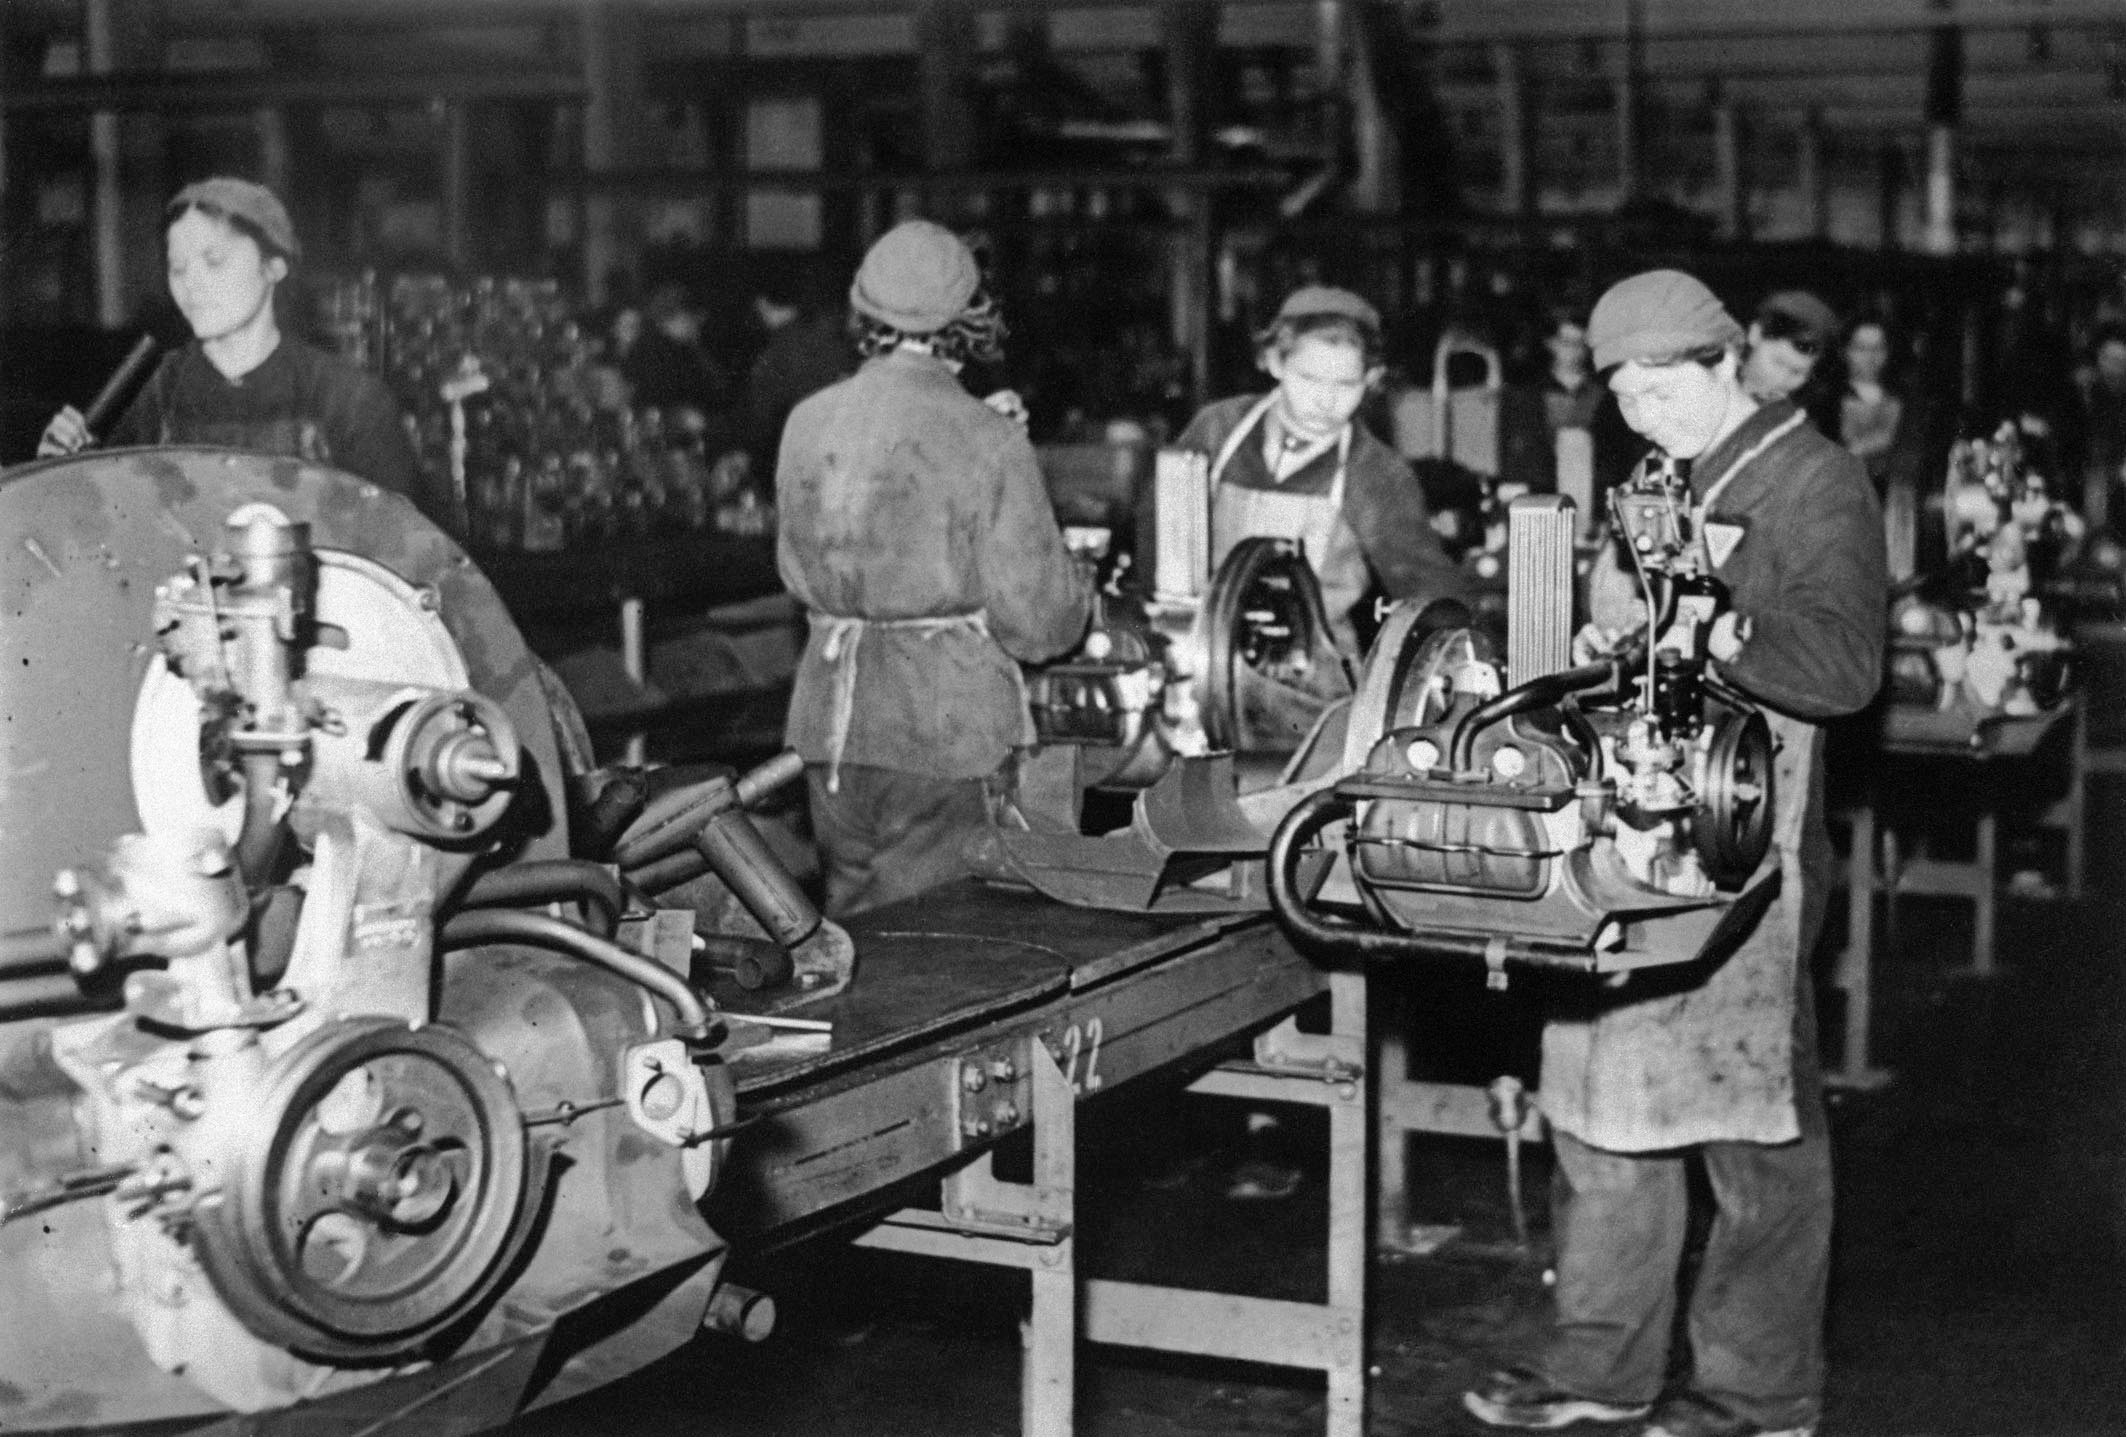 Forced laborer at the engine assembly during World War II.